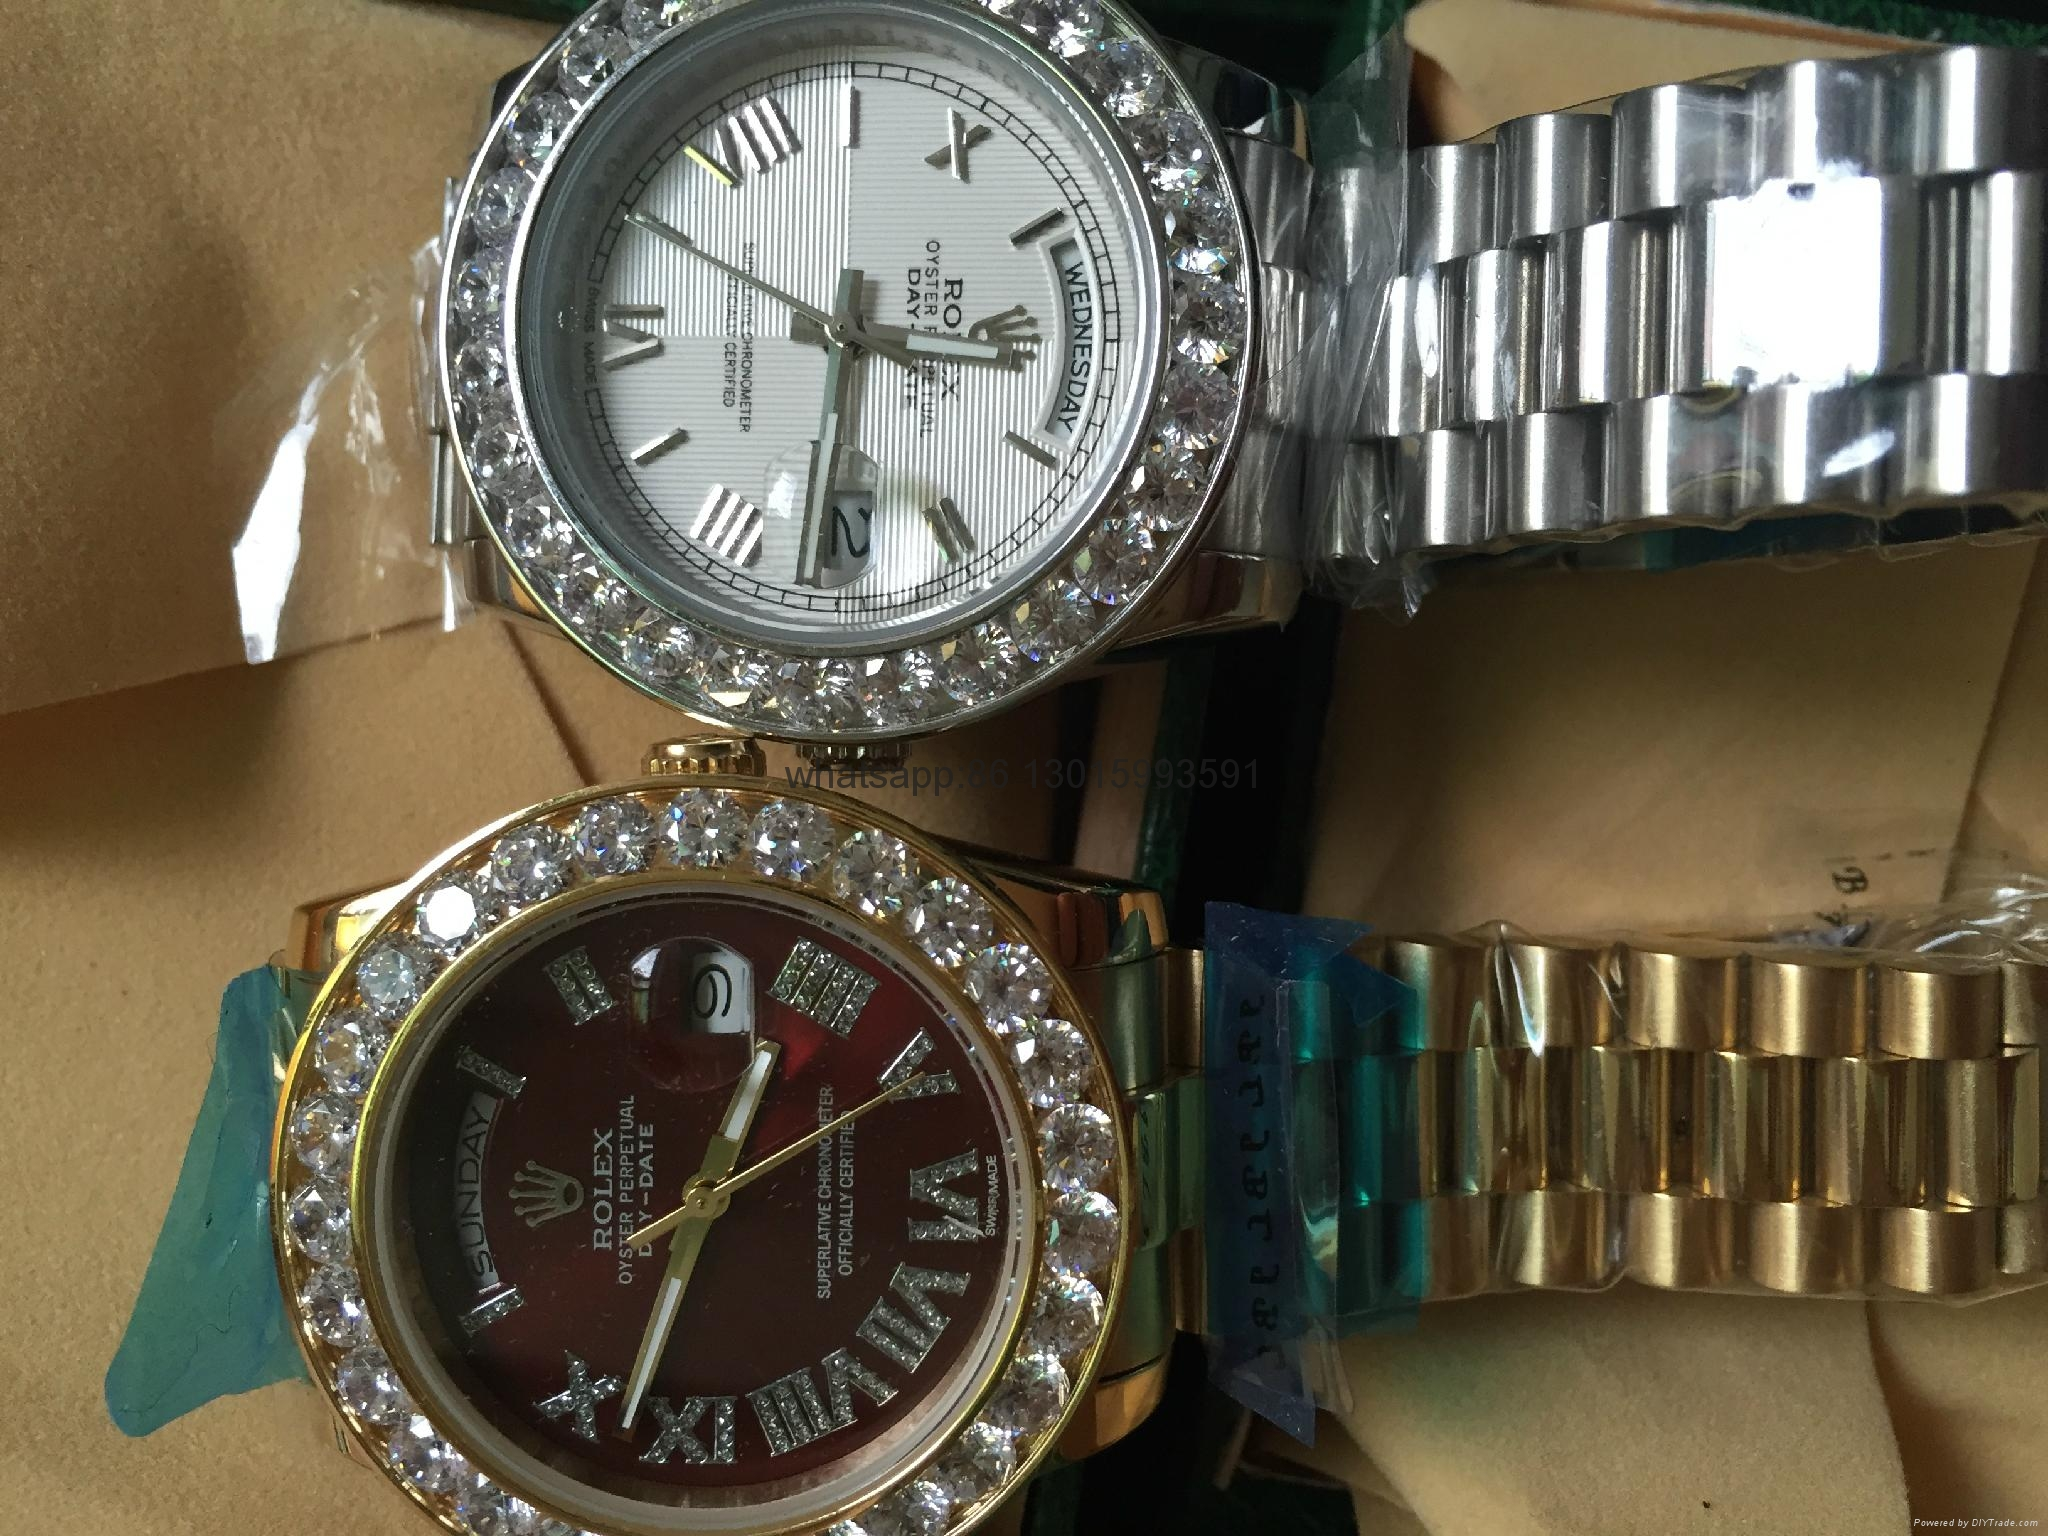 Cartier Watches Full of diamonds wholesale Cartier Watches hot model  18